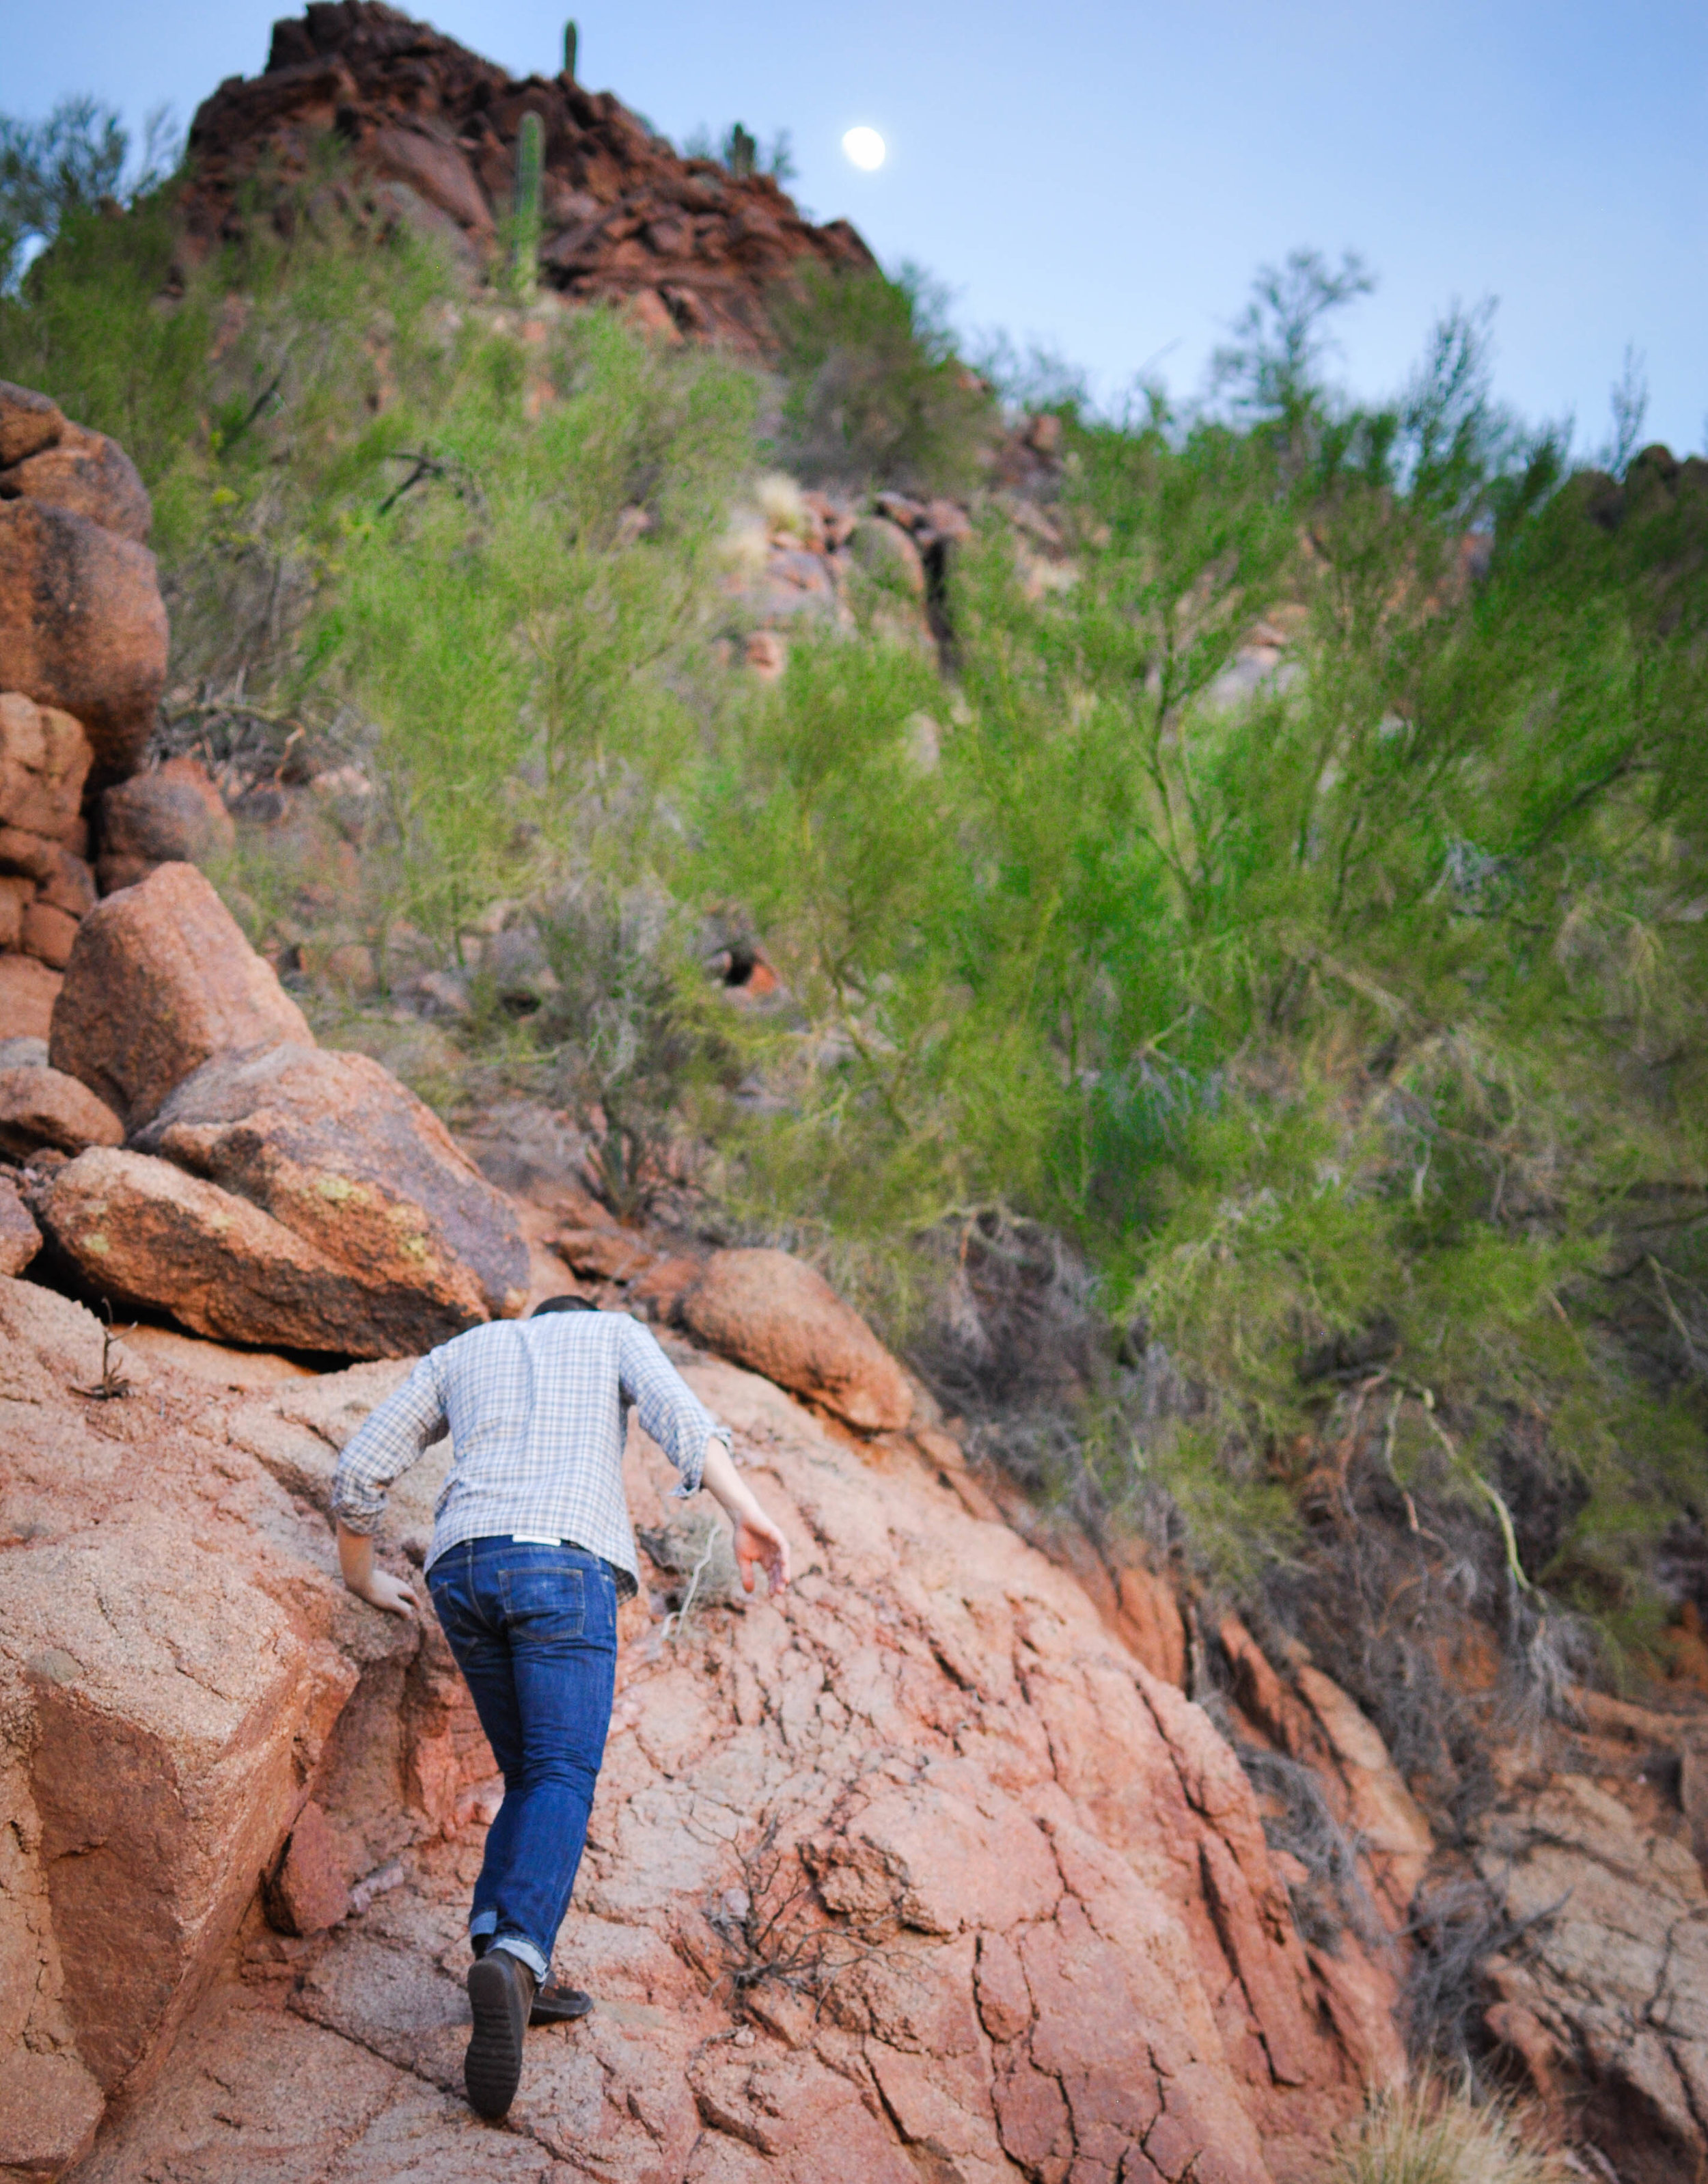 man climbing mountain in jeans